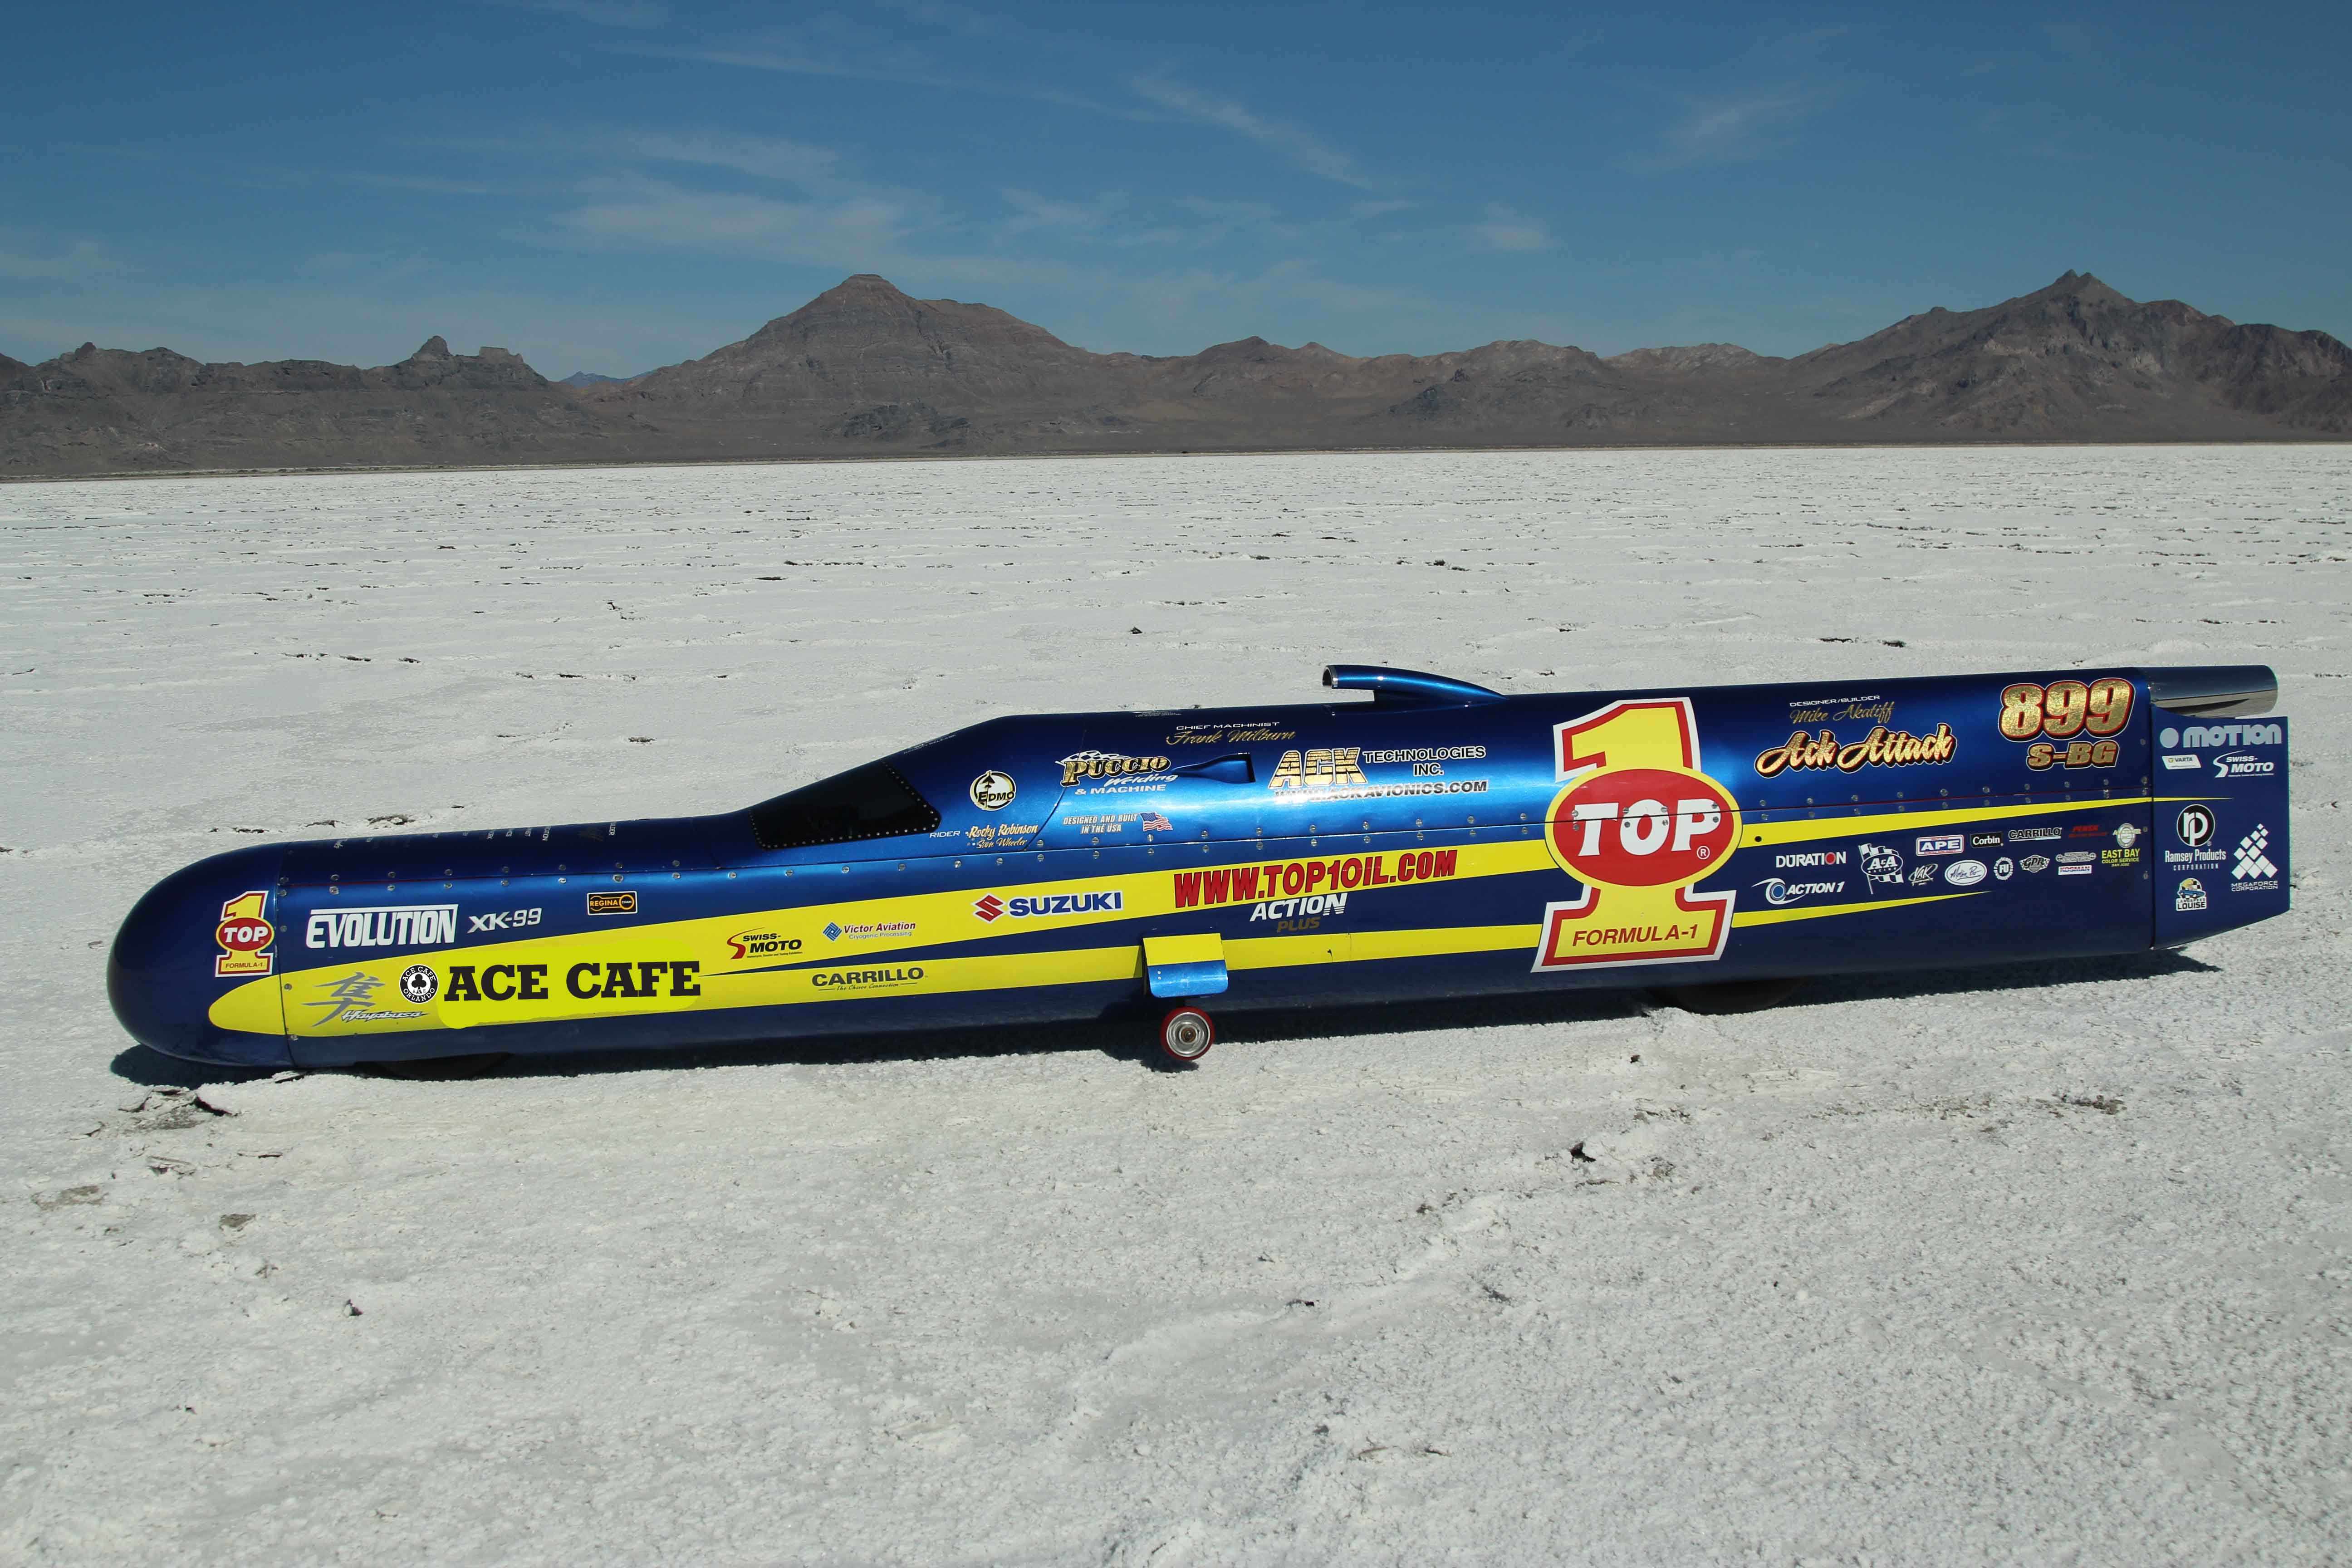 Ace Cafe Orlando Onboard TOP 1 ACK ATTACK  For 400 mph LSR Ride